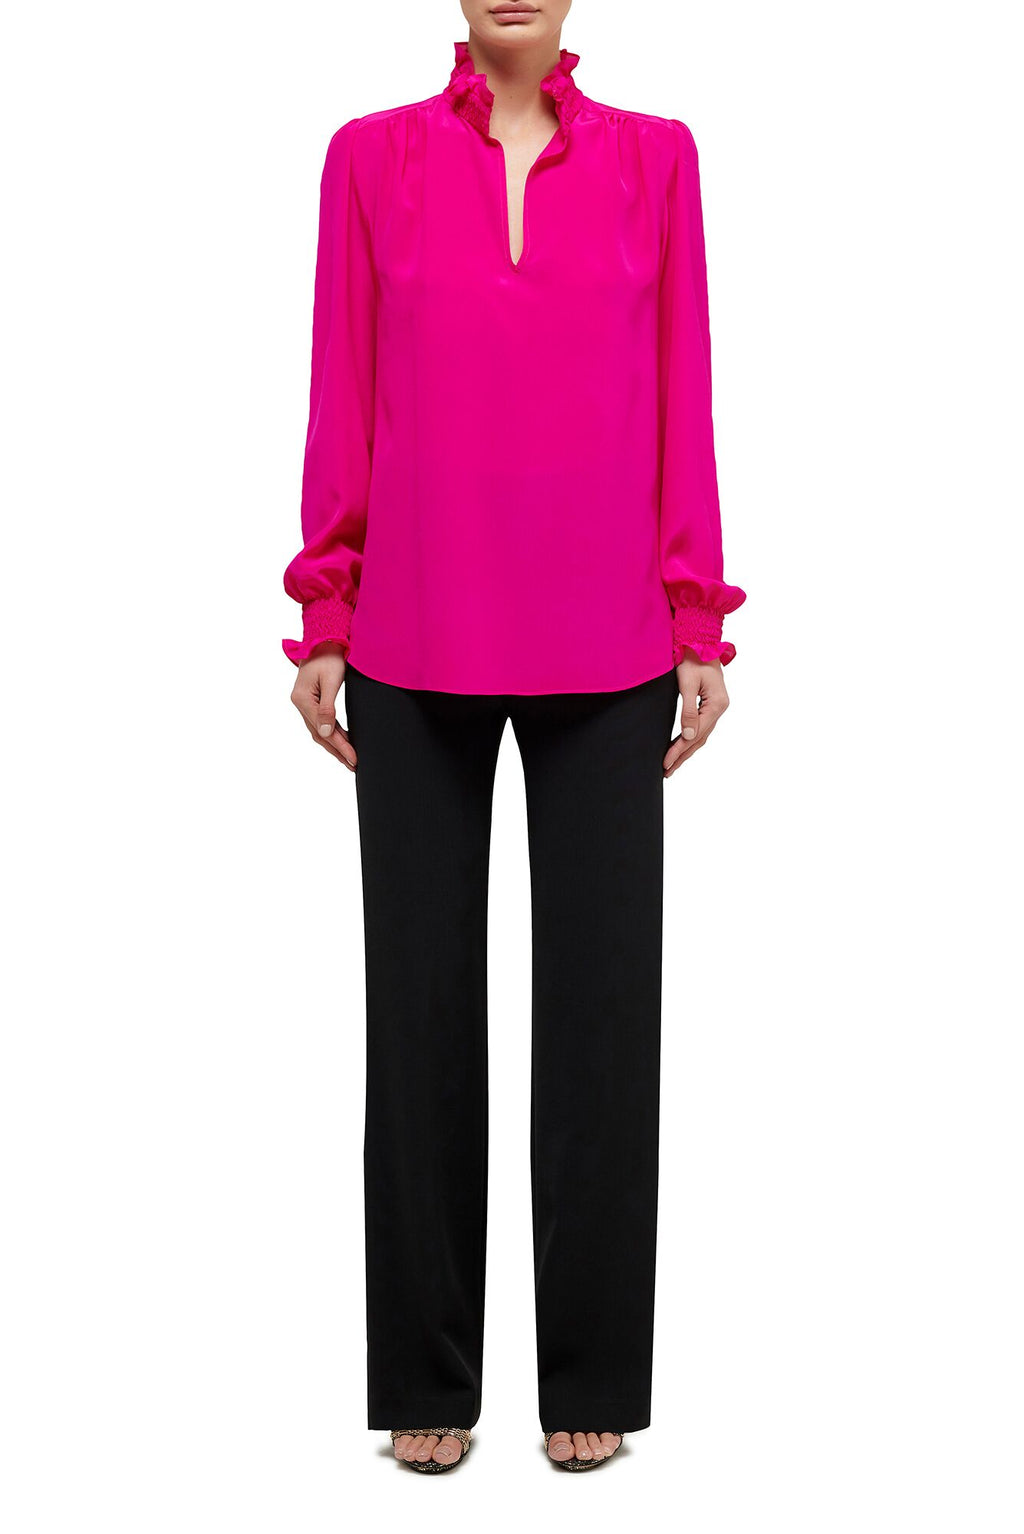 Kiki Blouse - Hot Pink